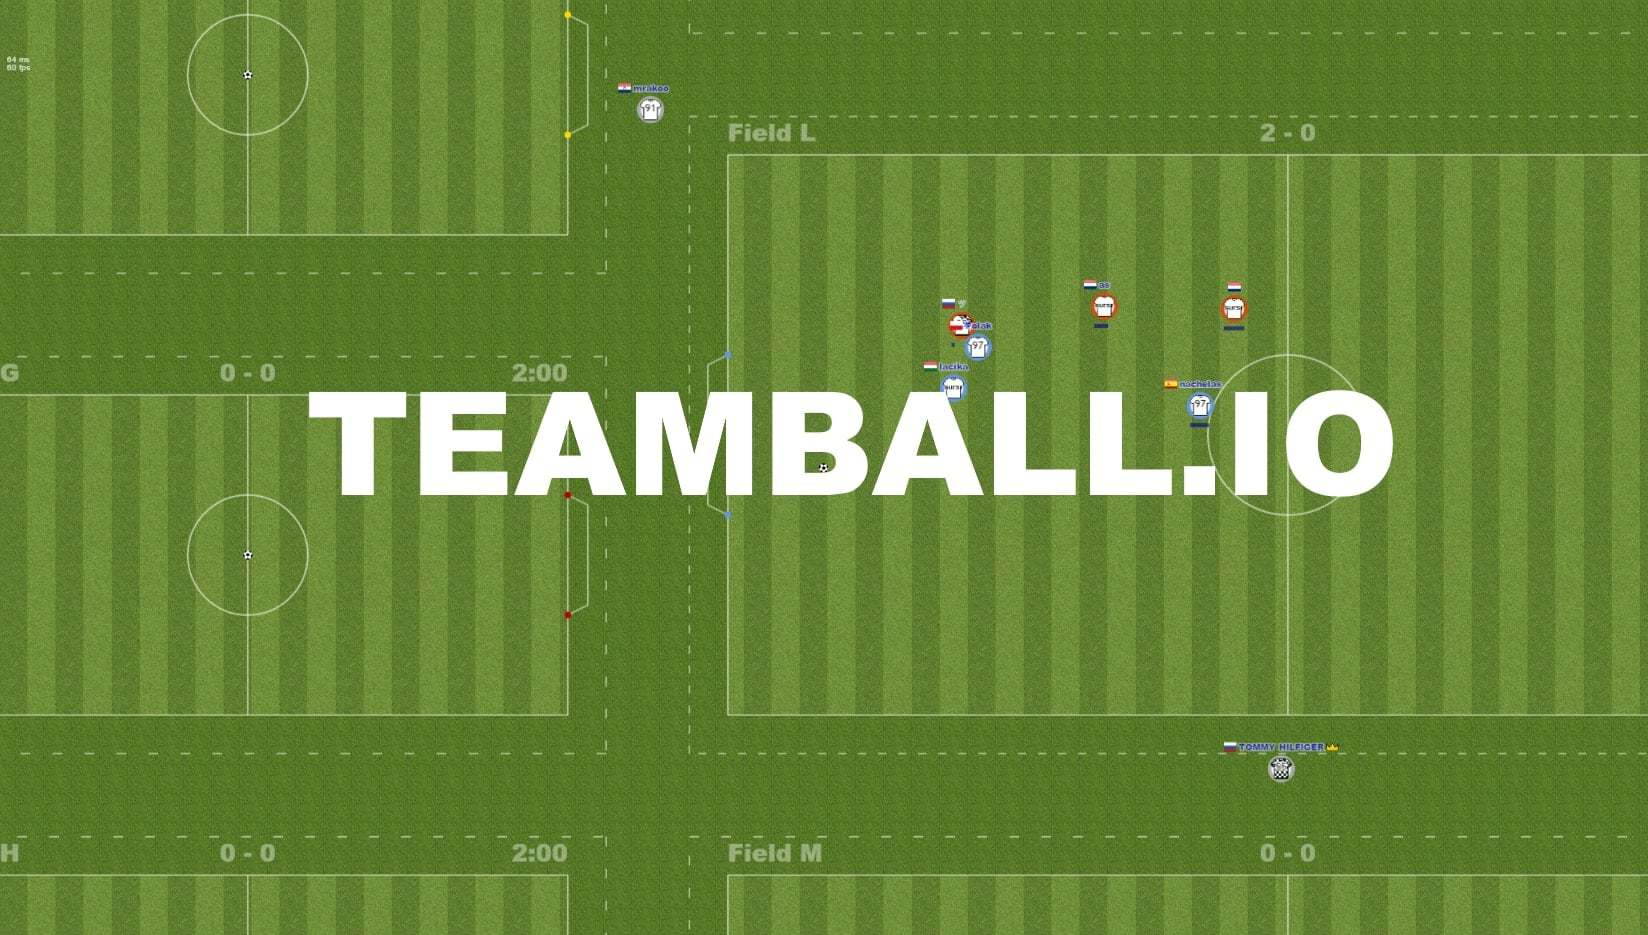 Teamball.io thumbnail image. Play IO Games at iogames.network!